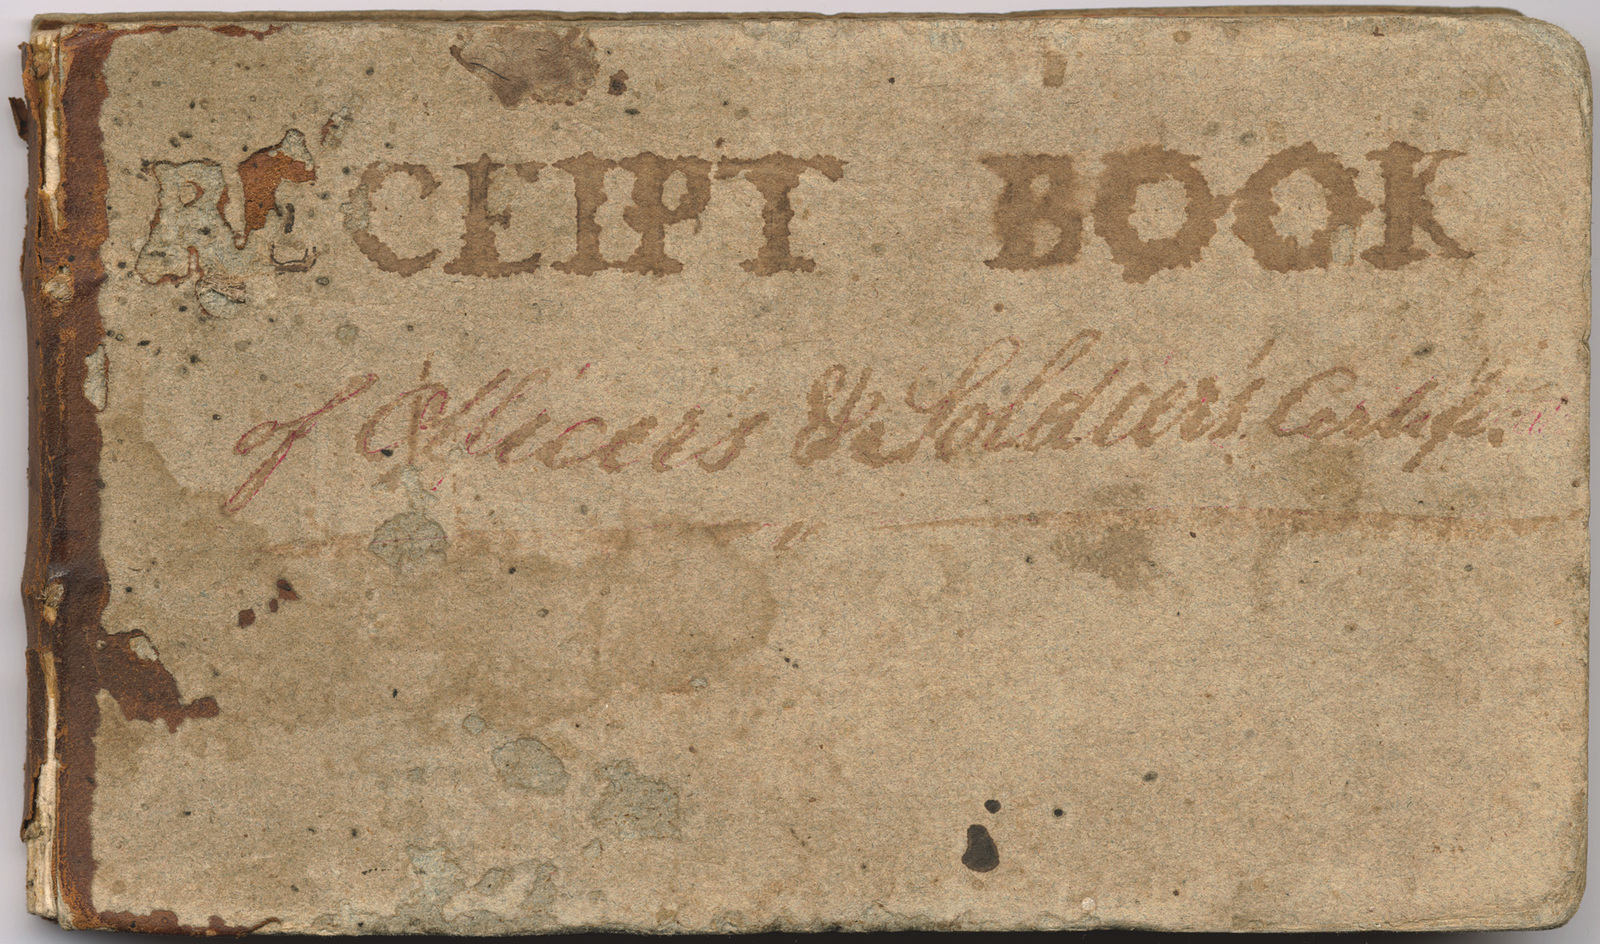 Receipt book for officer and soldier's certificates, Illinois Grant